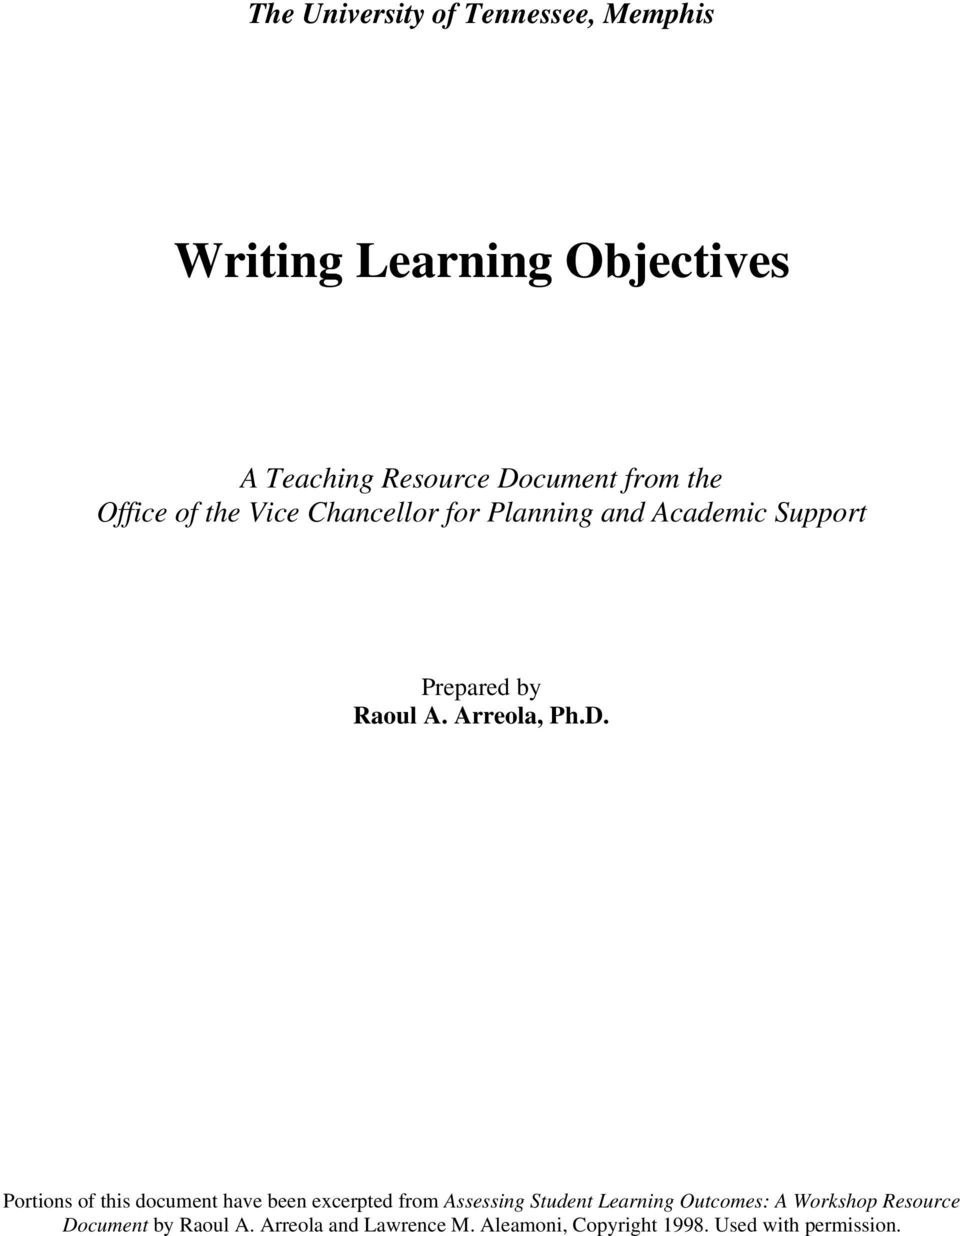 Portions of this document have been excerpted from Assessing Student Learning Outcomes: A